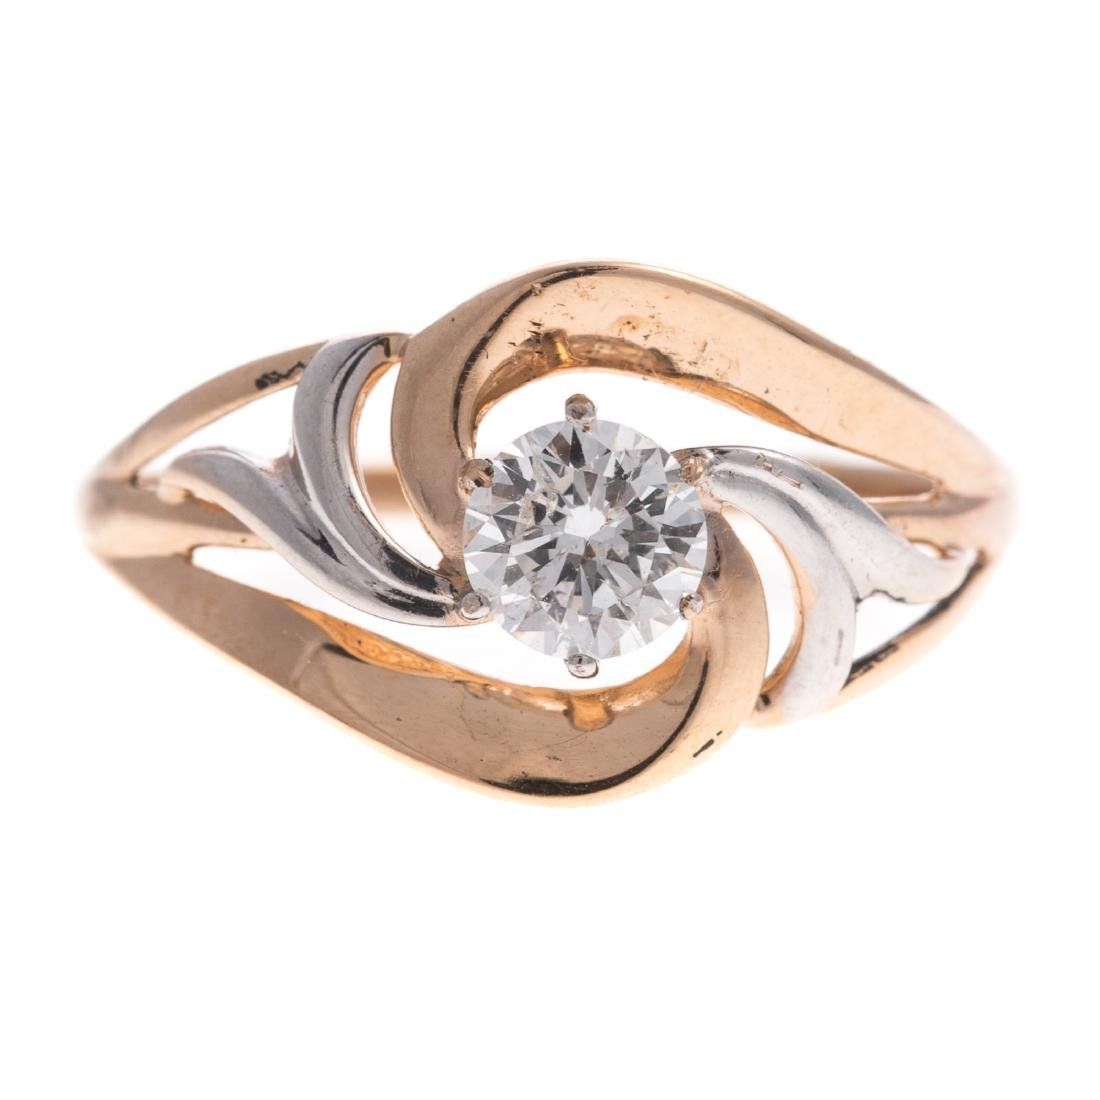 A Lady's Diamond Ring in 14K Gold